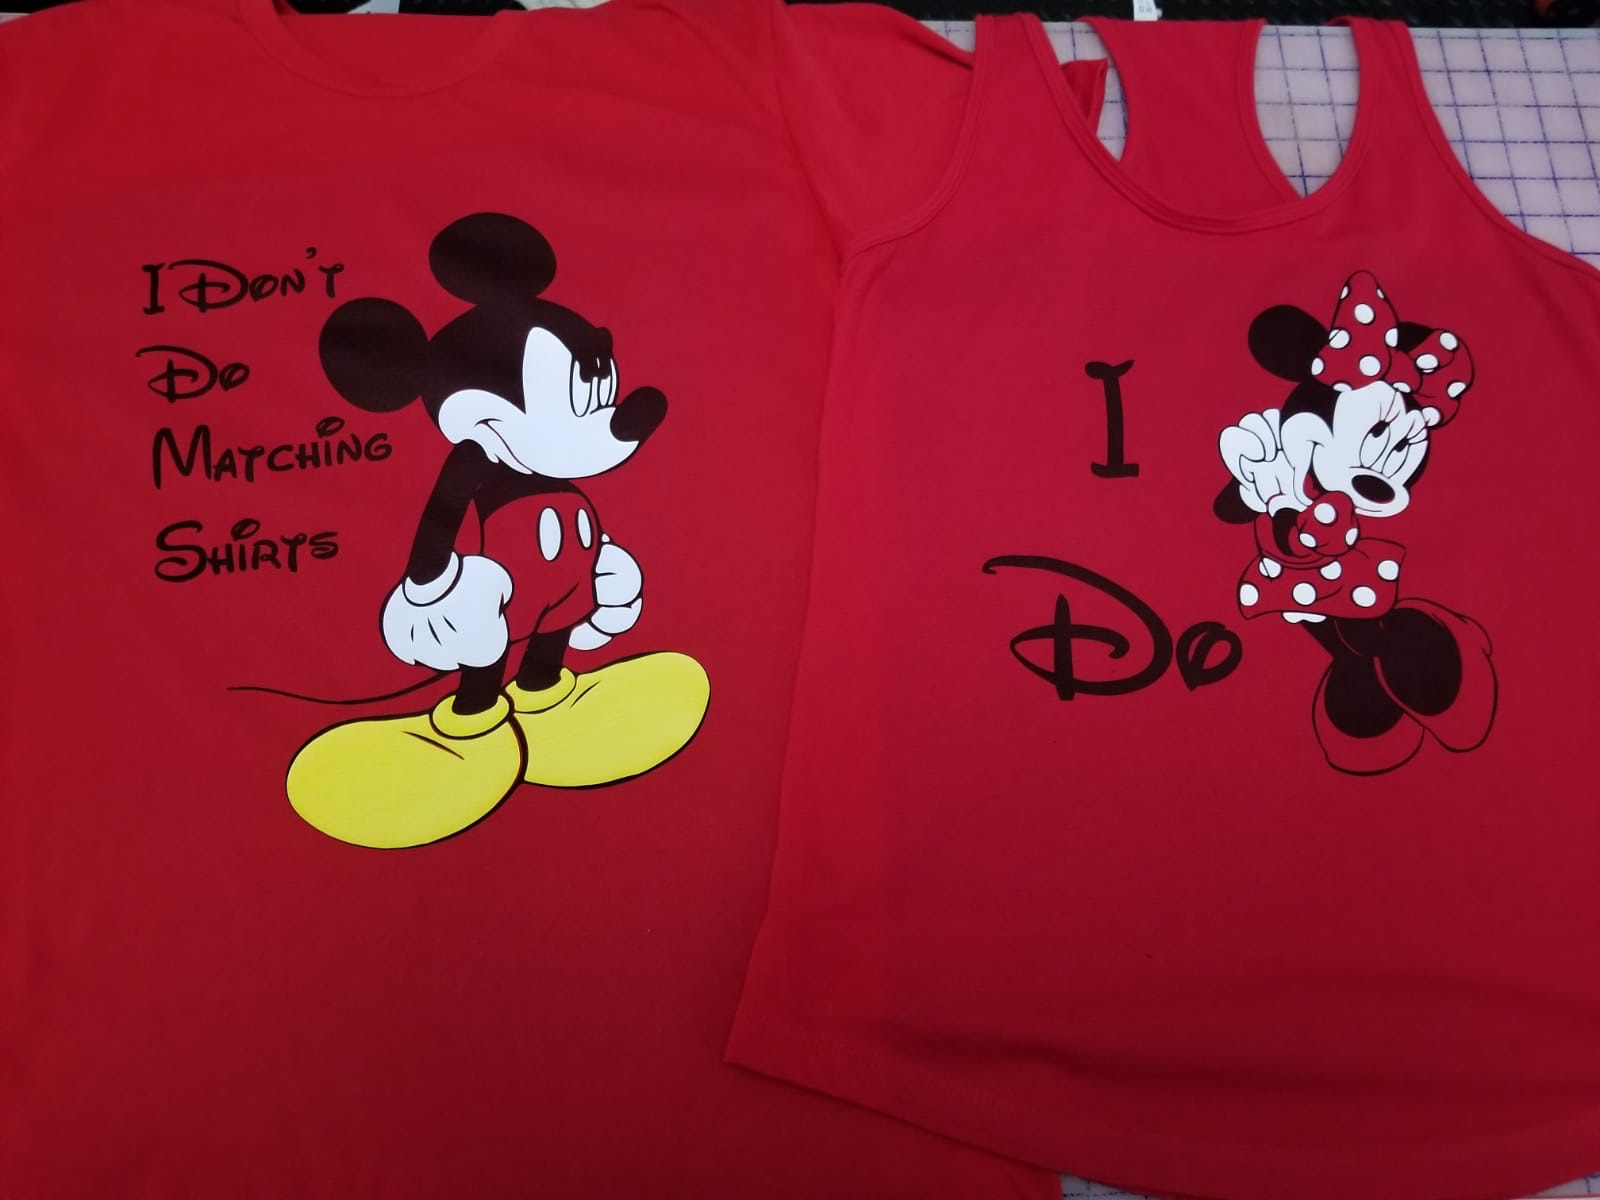 f2472b5ca3e2cc Funny matching Disney shirts, I Don't Do Matching Shirts Angry Mickey Mouse,  I do Minnie Mouse